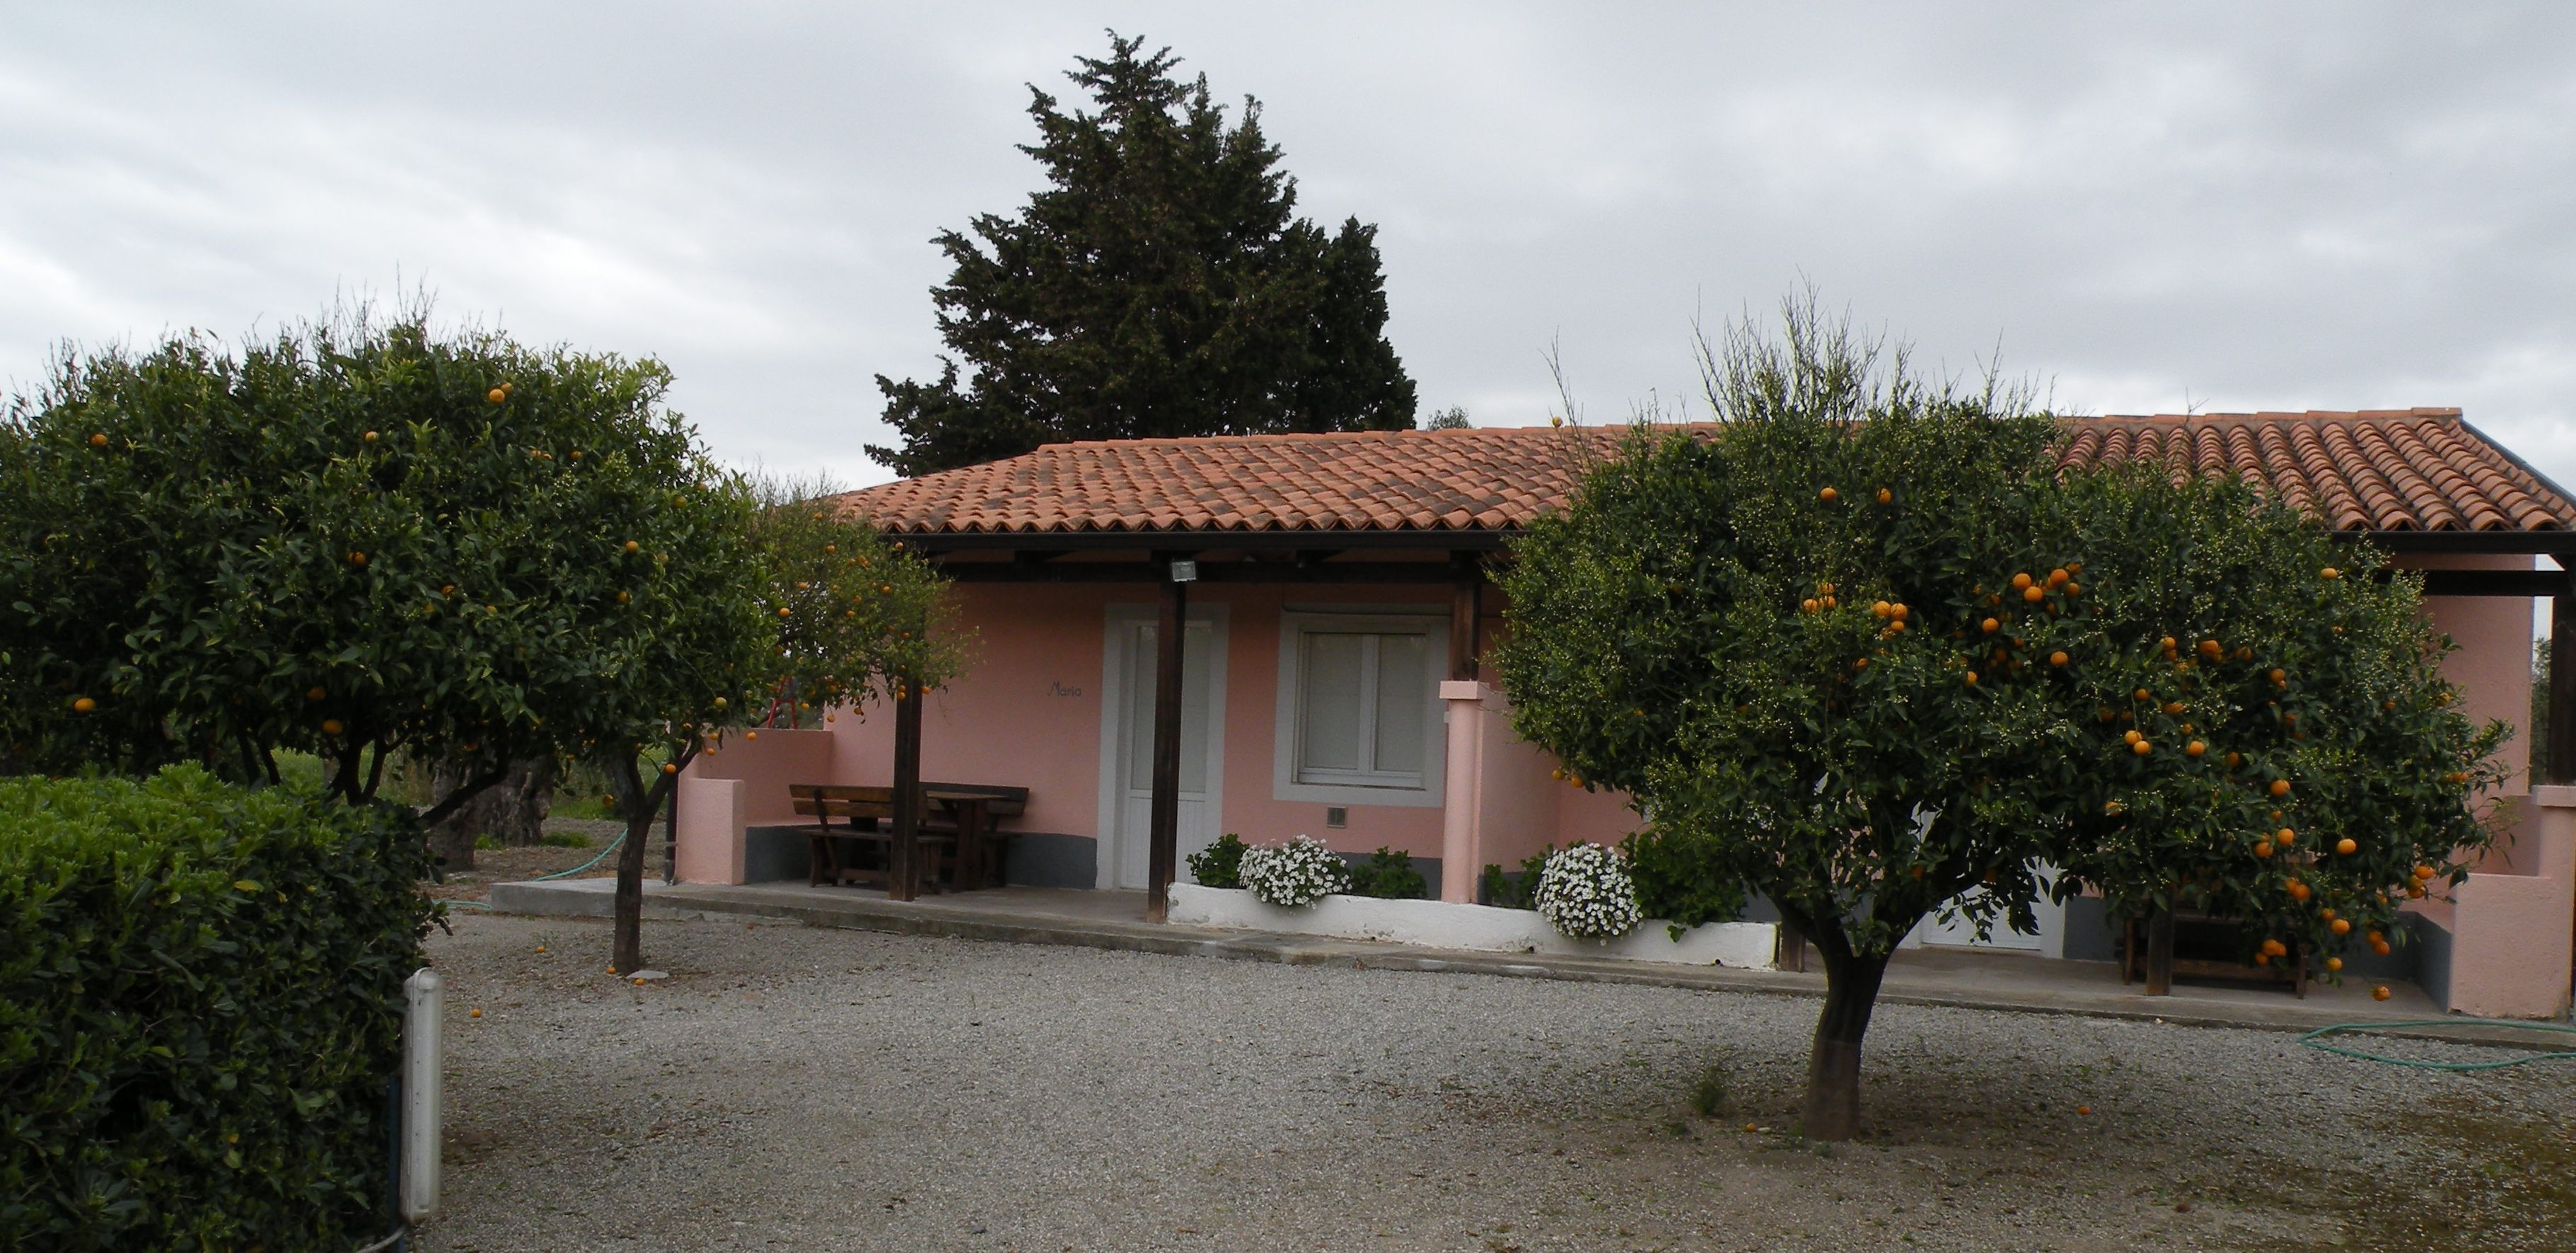 Surrounded by the green countryside, there are the nice apartments of Rosa and Maria